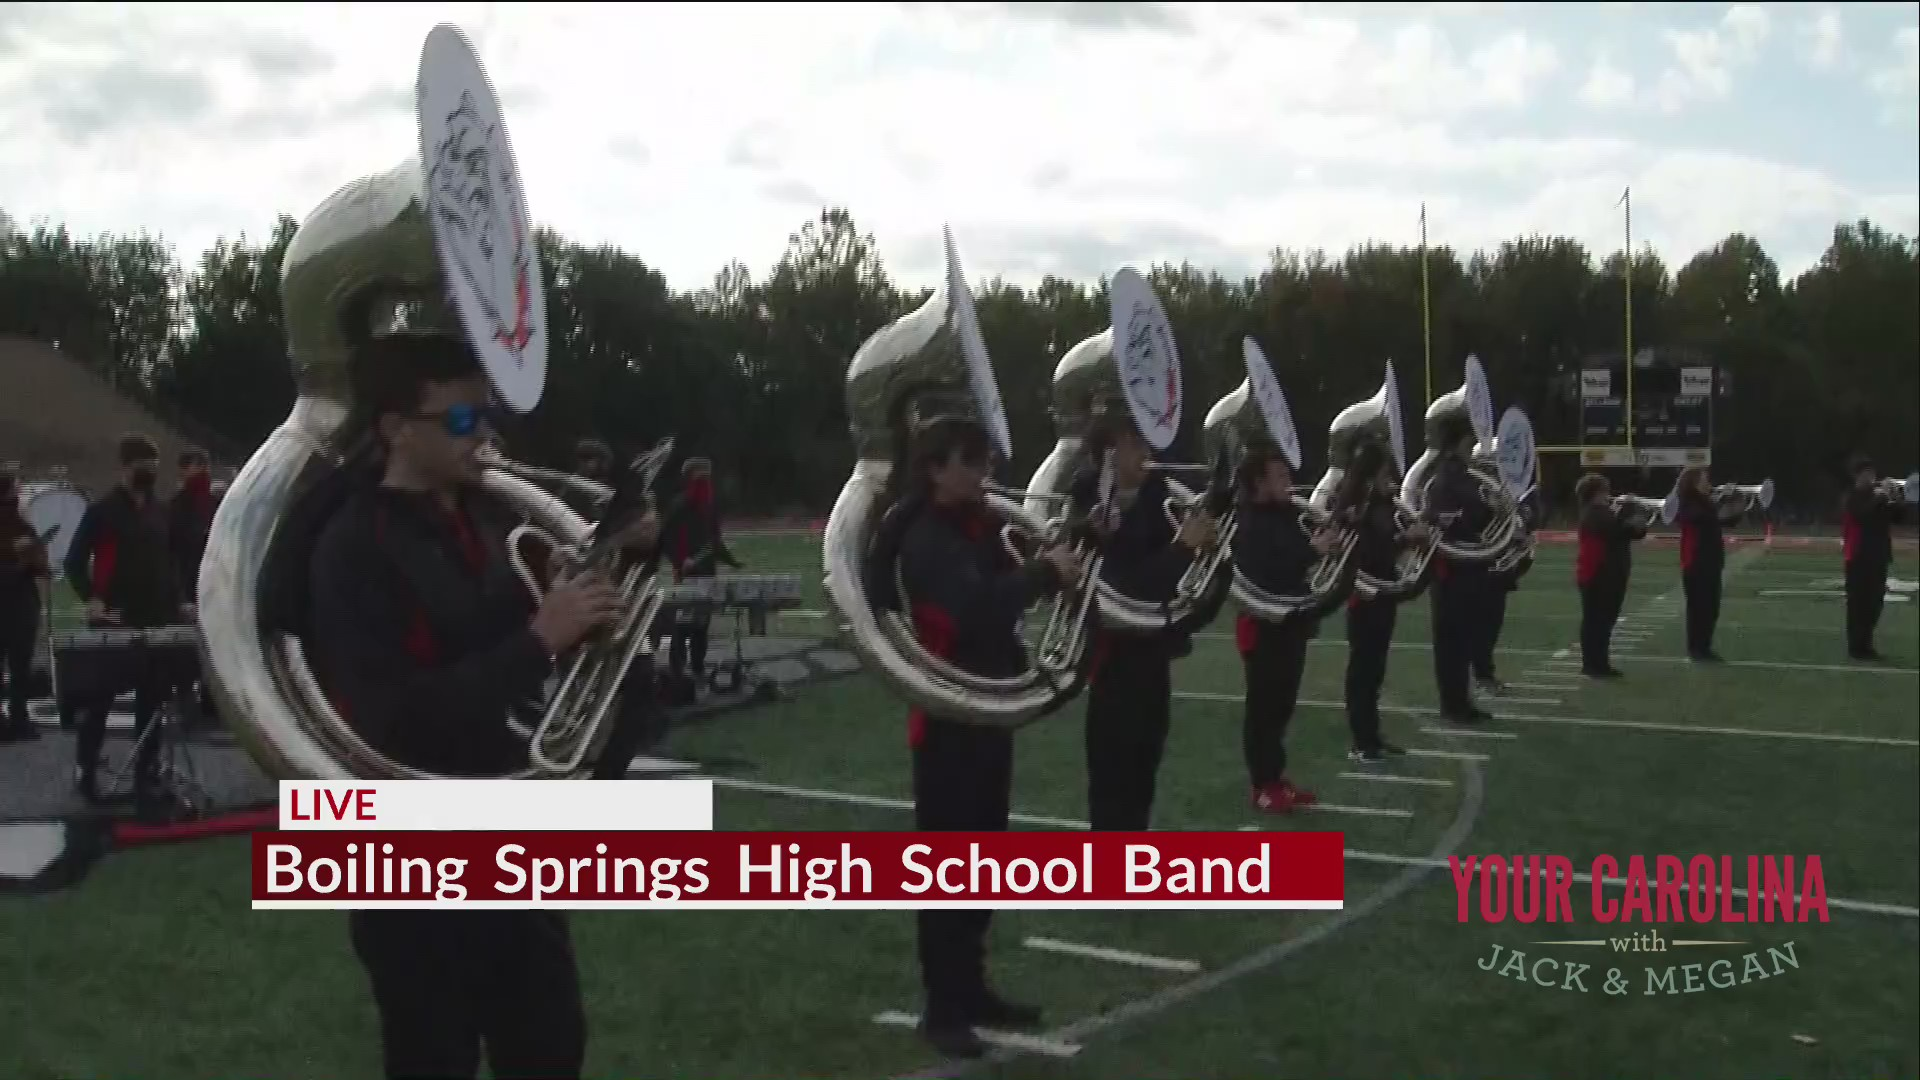 Boiling Springs High School Band